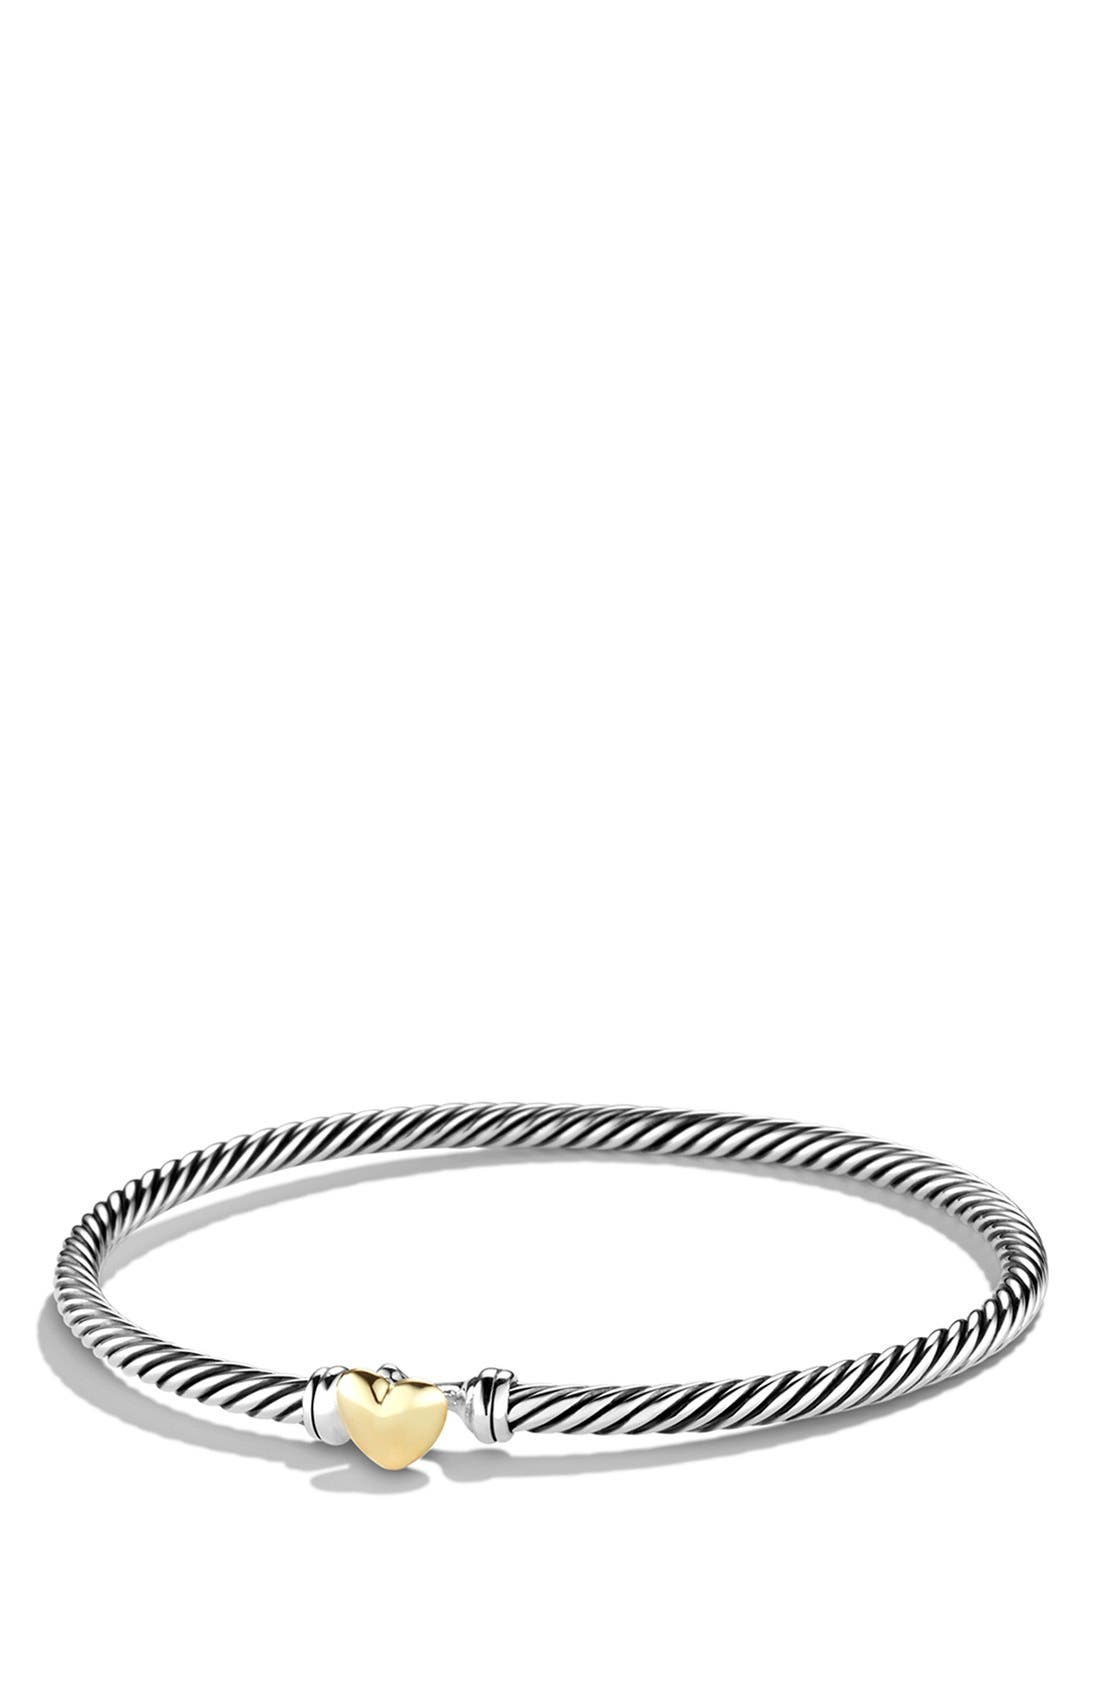 Main Image - David Yurman 'Cable Collectibles' Heart Bracelet with Gold